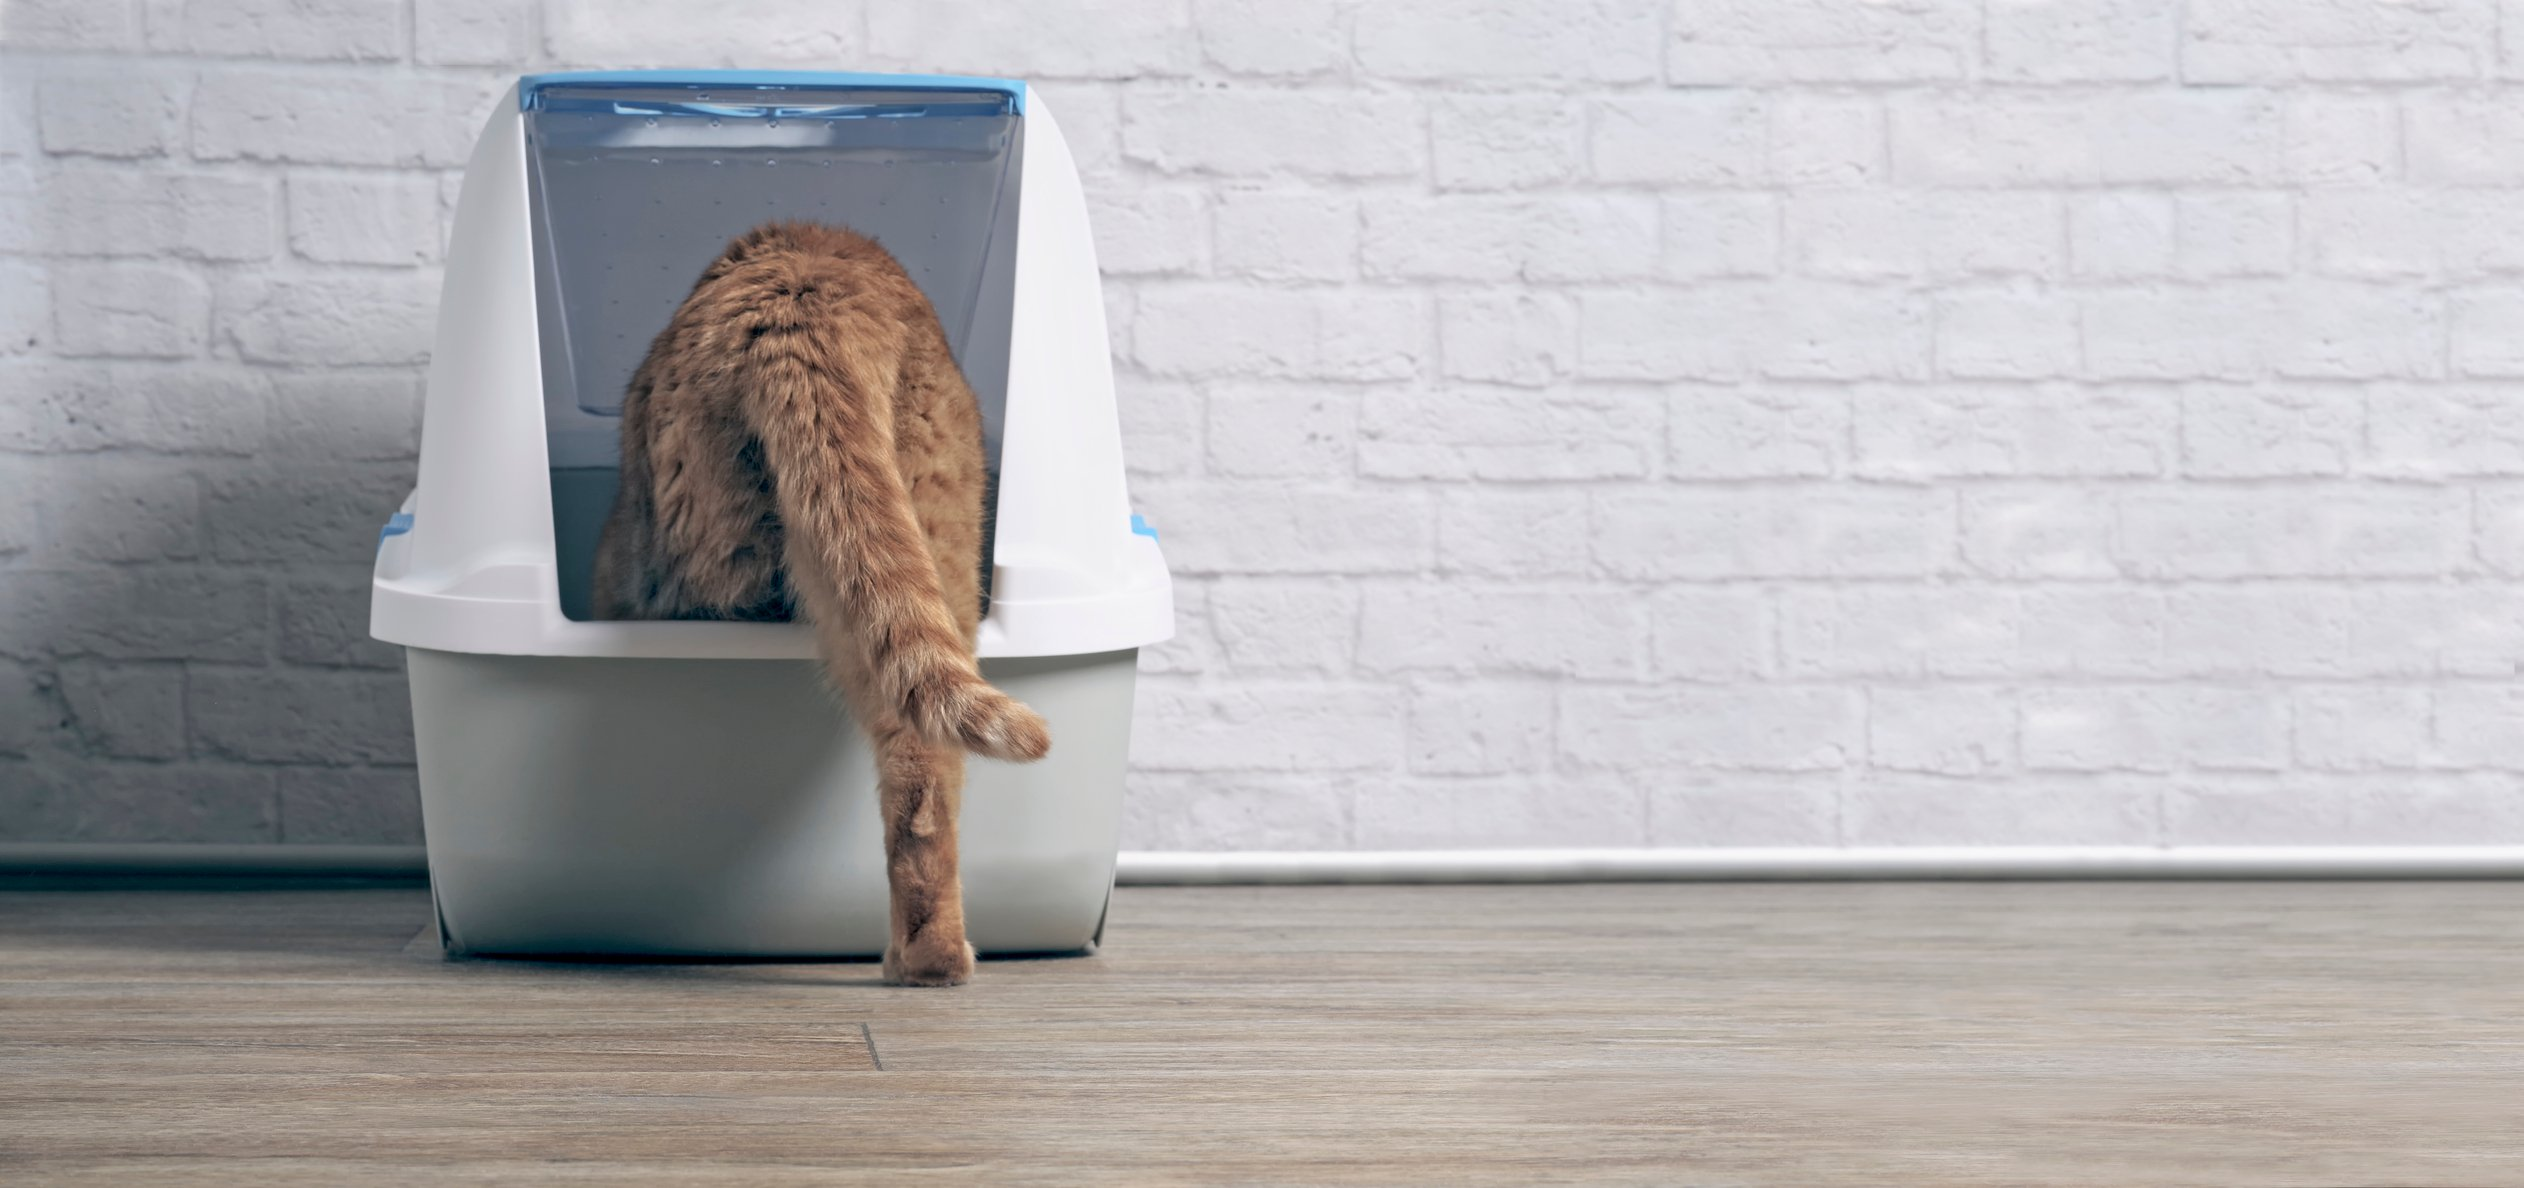 Orange cat uses a covered litter box